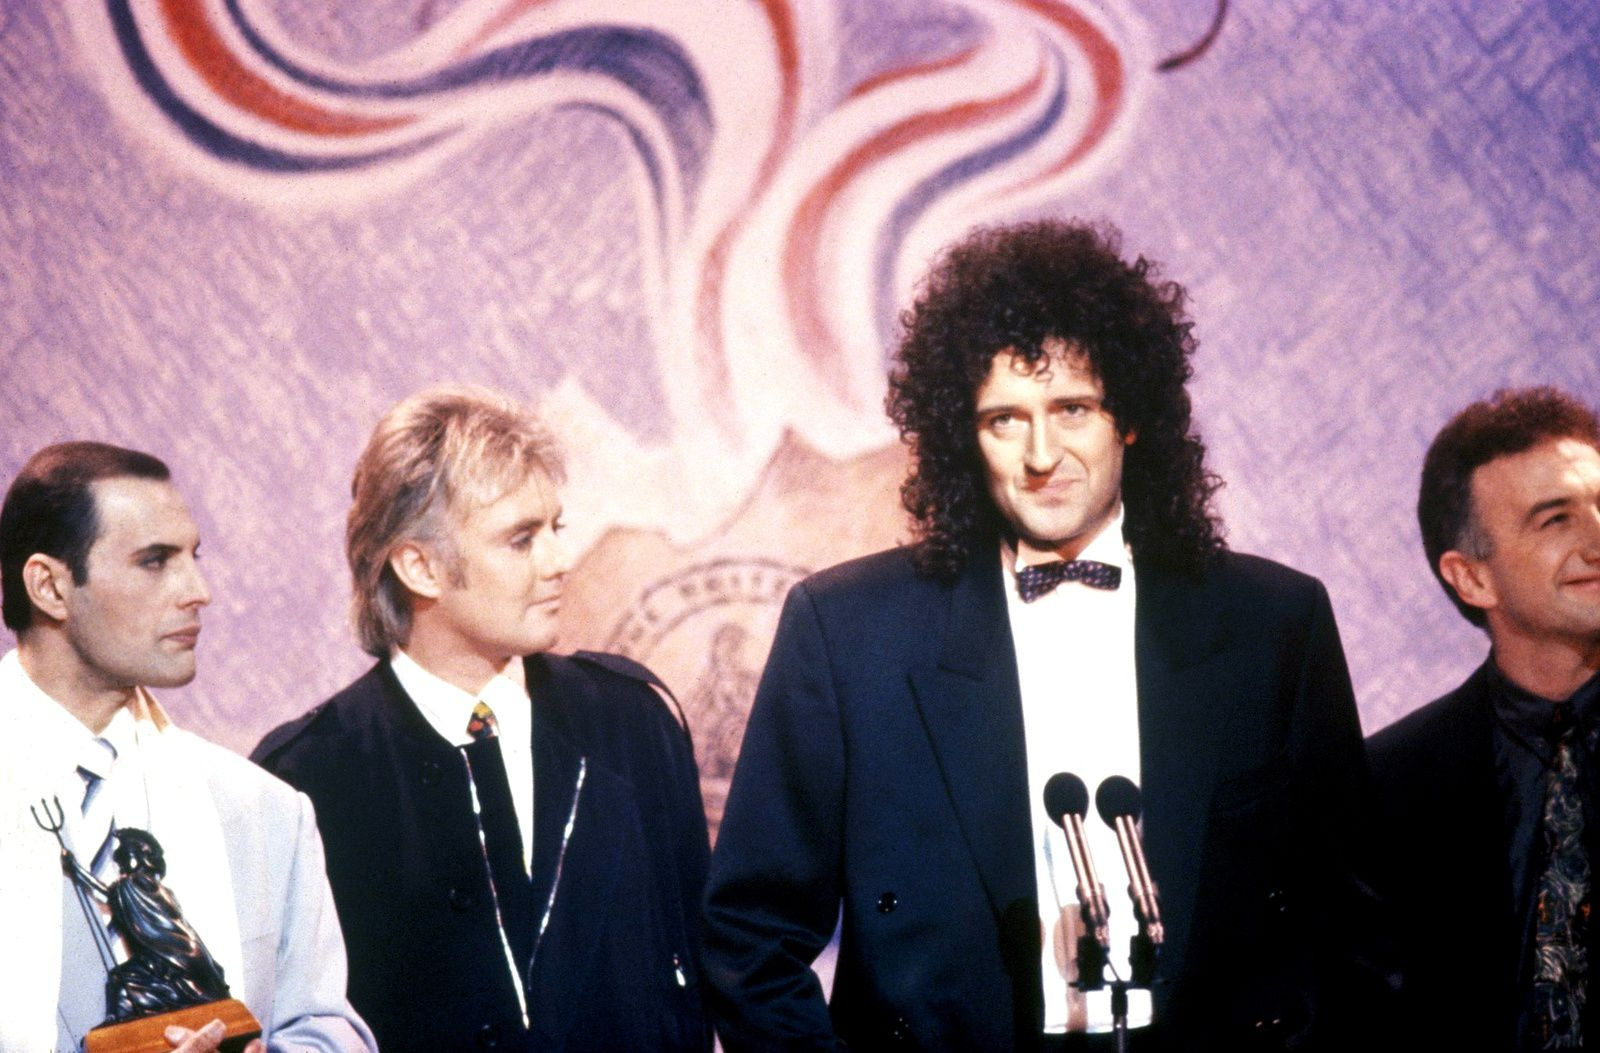 Freddie Mercury, Roger Taylor, Brian May and John Deacon - Brit Awards 1990 & 20th Anniversary of Queen